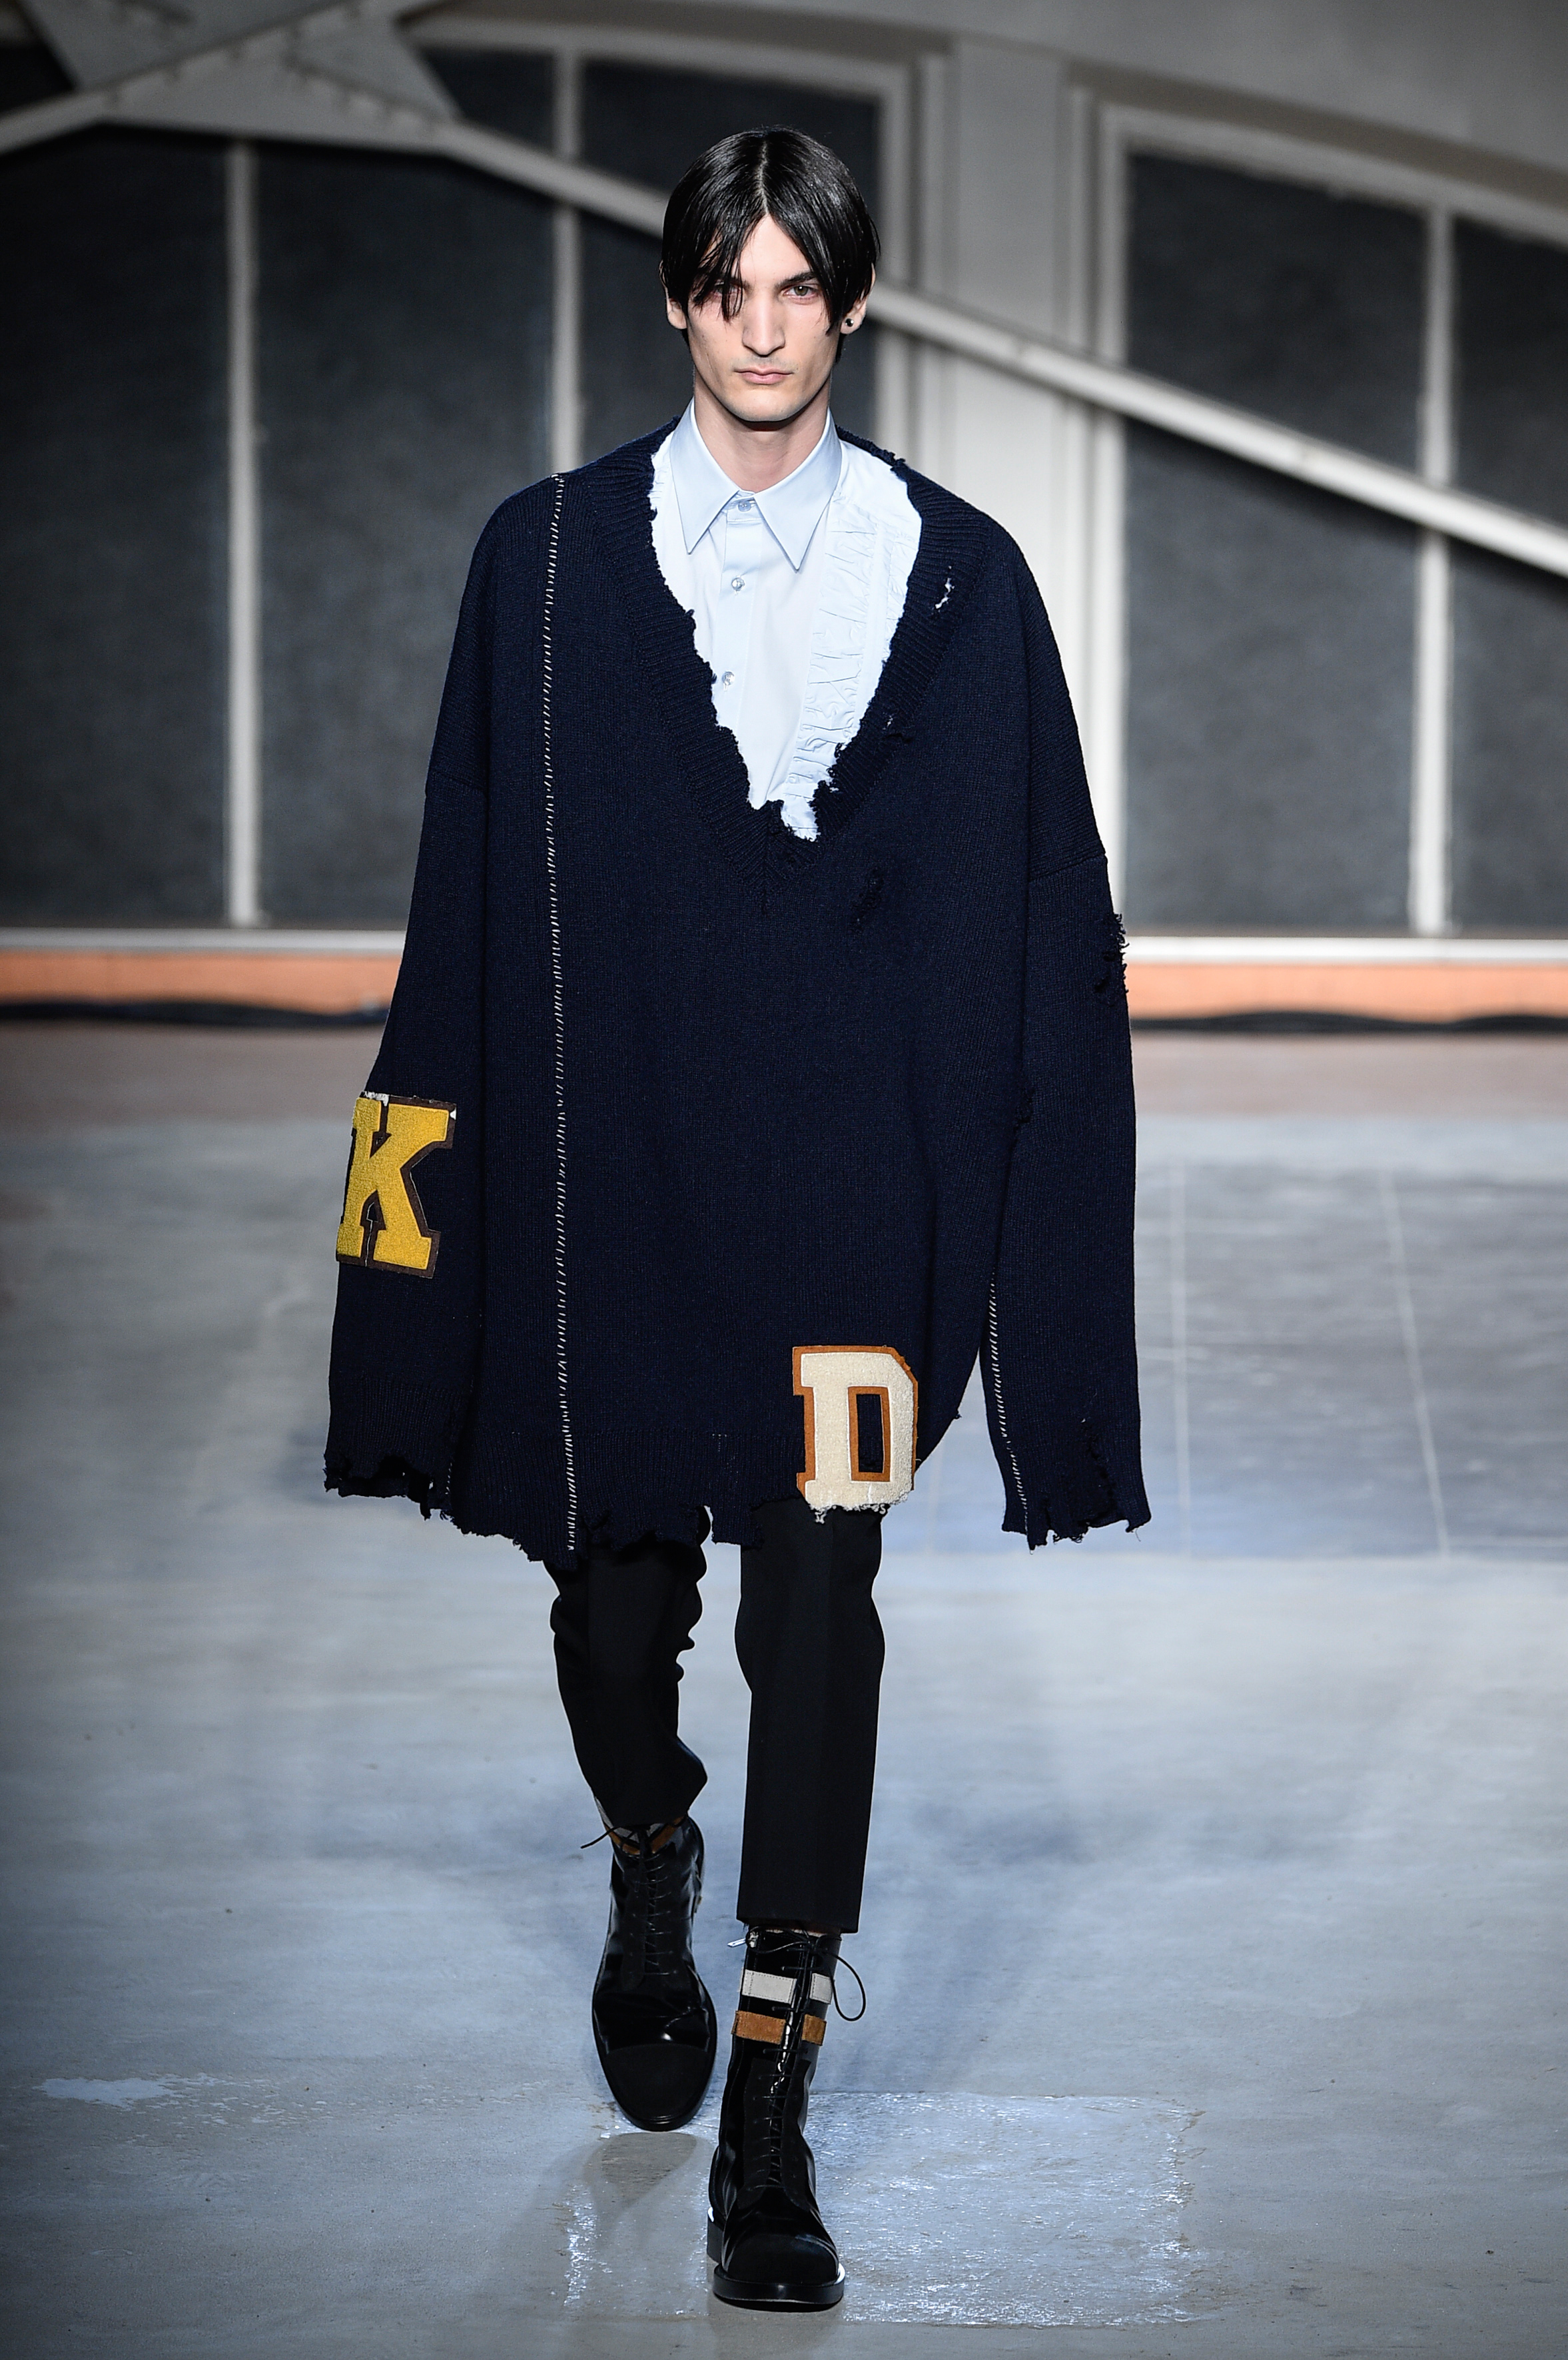 """Debuting his first collection since leaving Dior, Raf Simons continued his love affair with proportion with a runway of oversized knits, sweaters and jackets that abide by the motto """"go big or go home""""."""